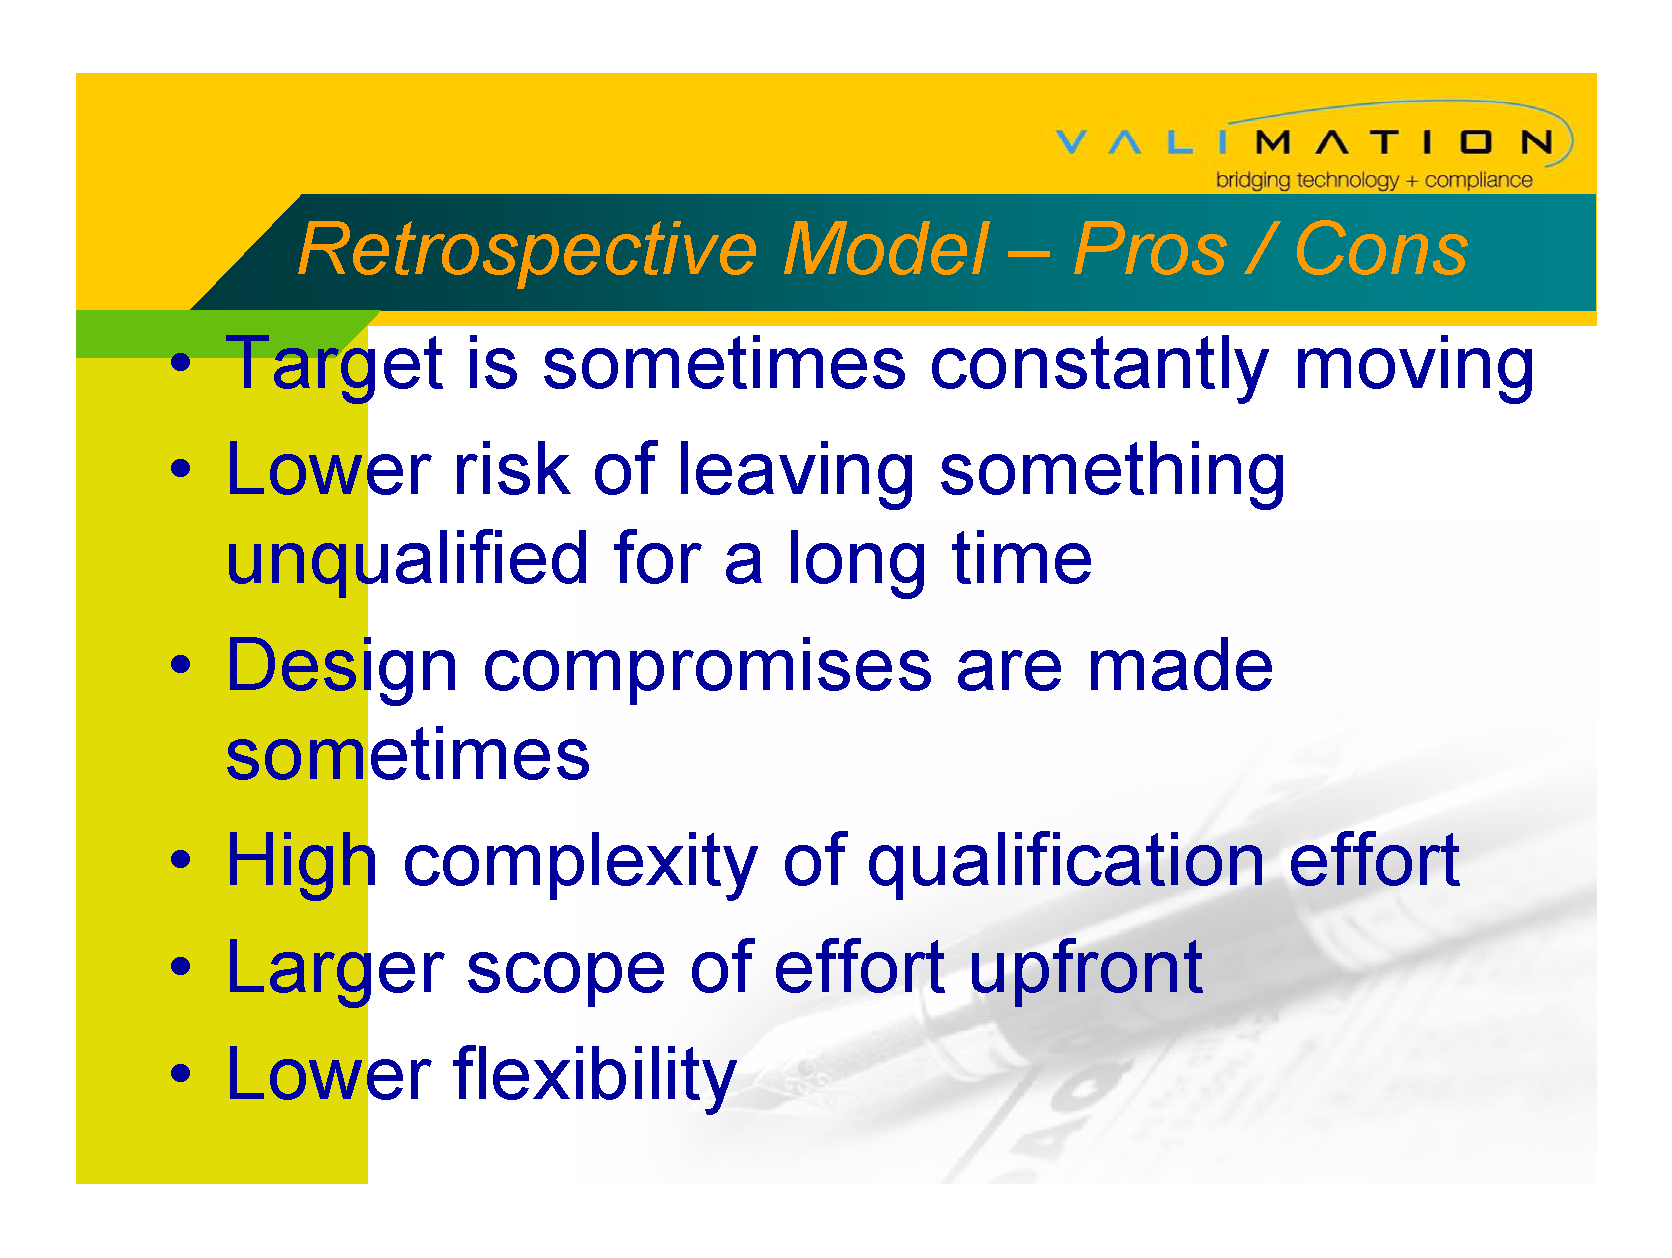 Network Qualification - Accretive Model By ValiMation_Page_20.png